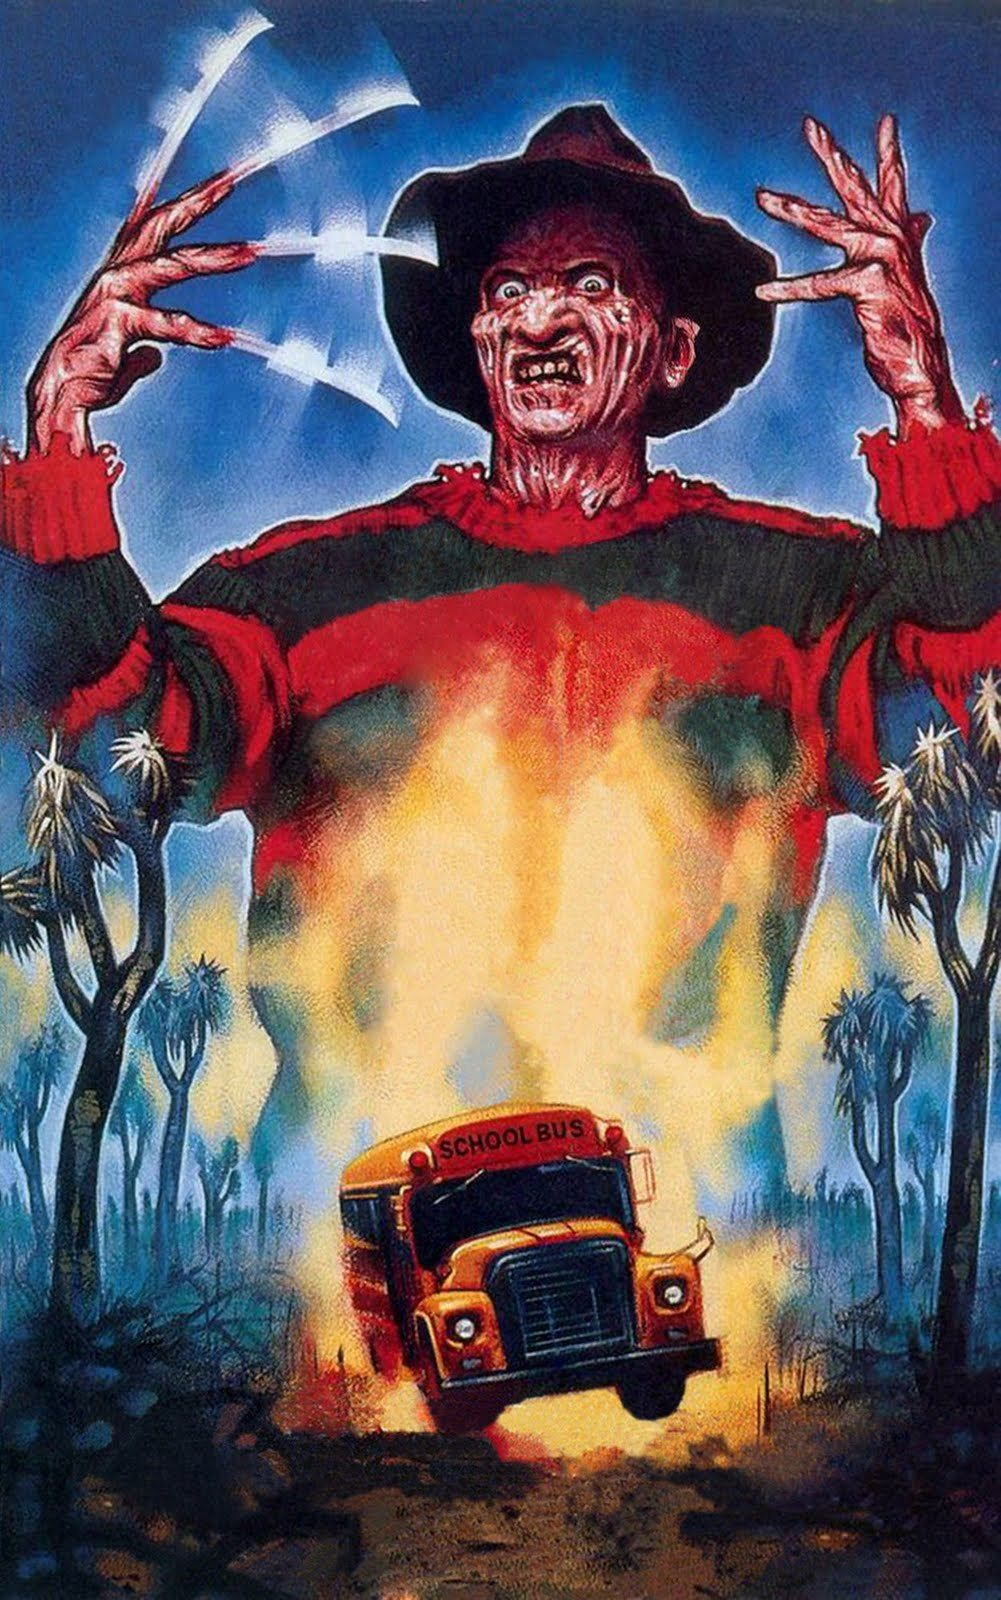 Freddy's Revenge original artwork